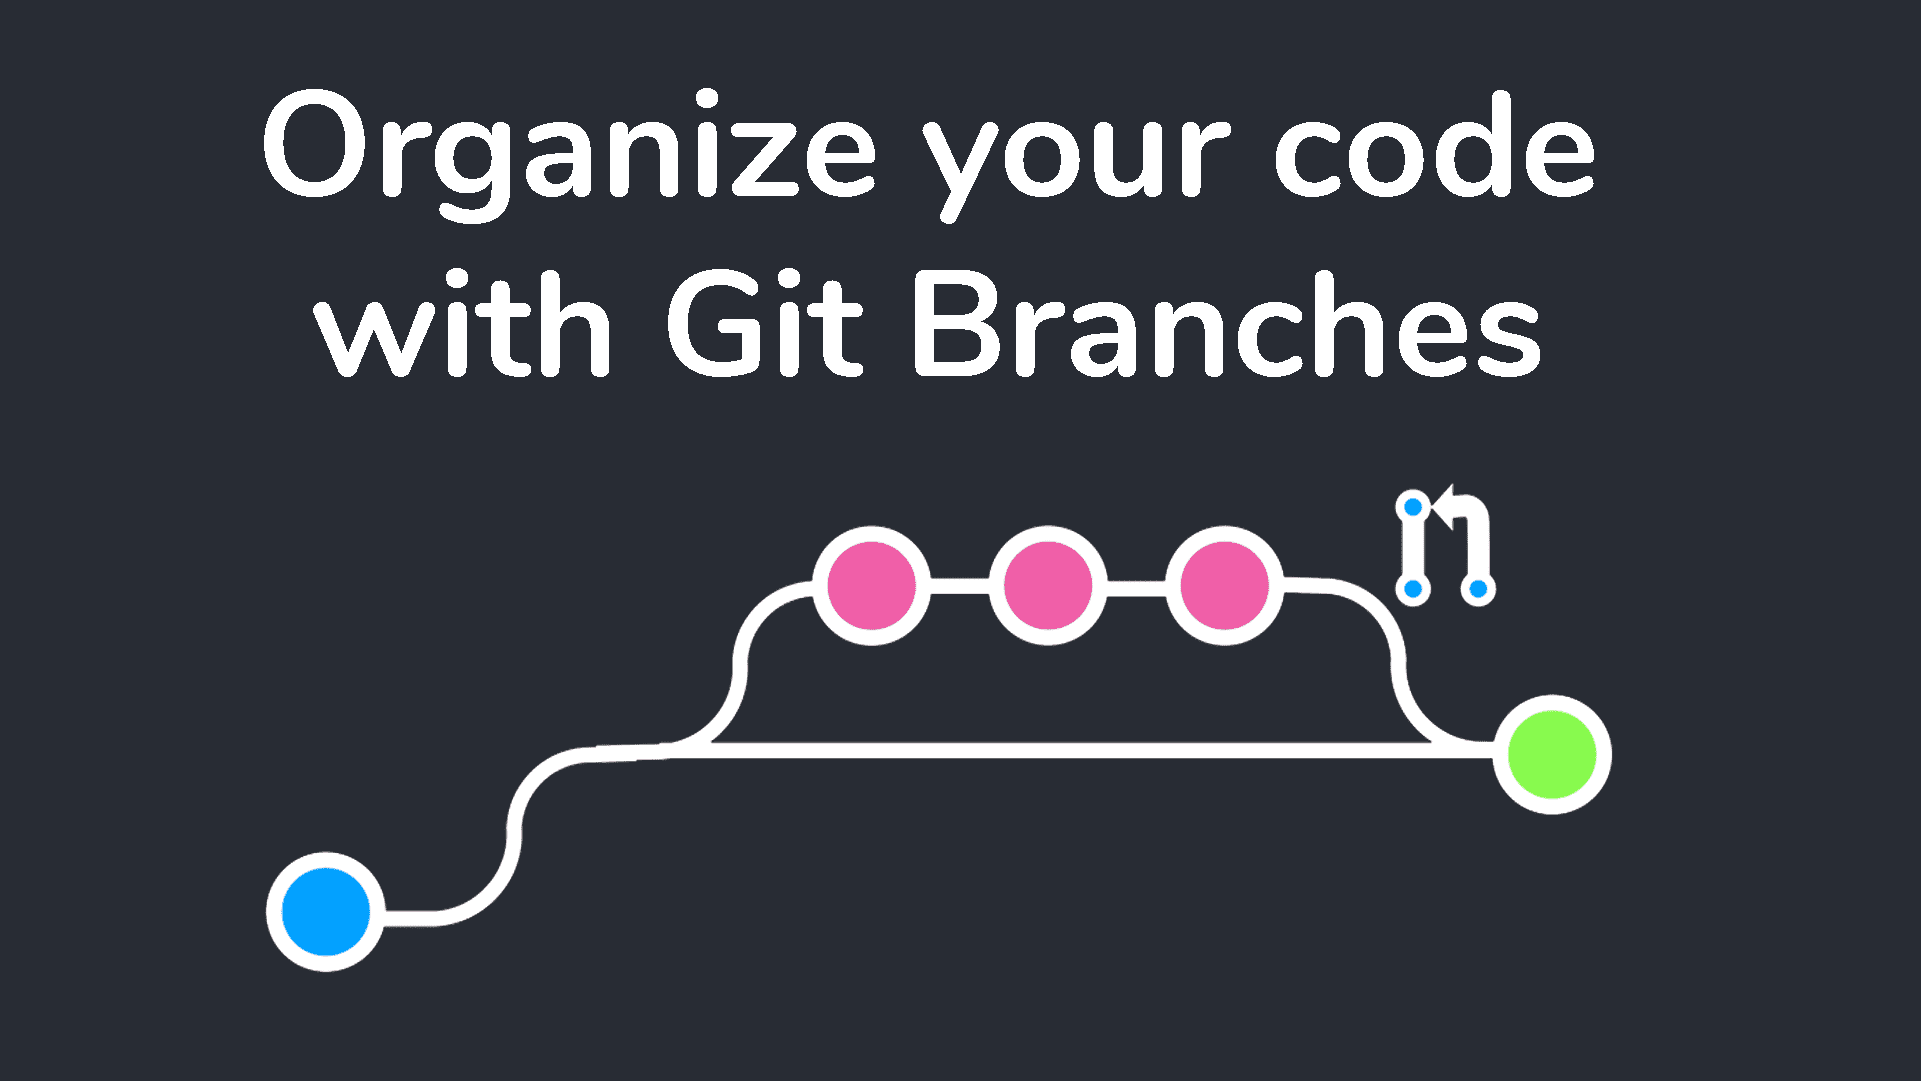 How to use git branches for the organized code base you